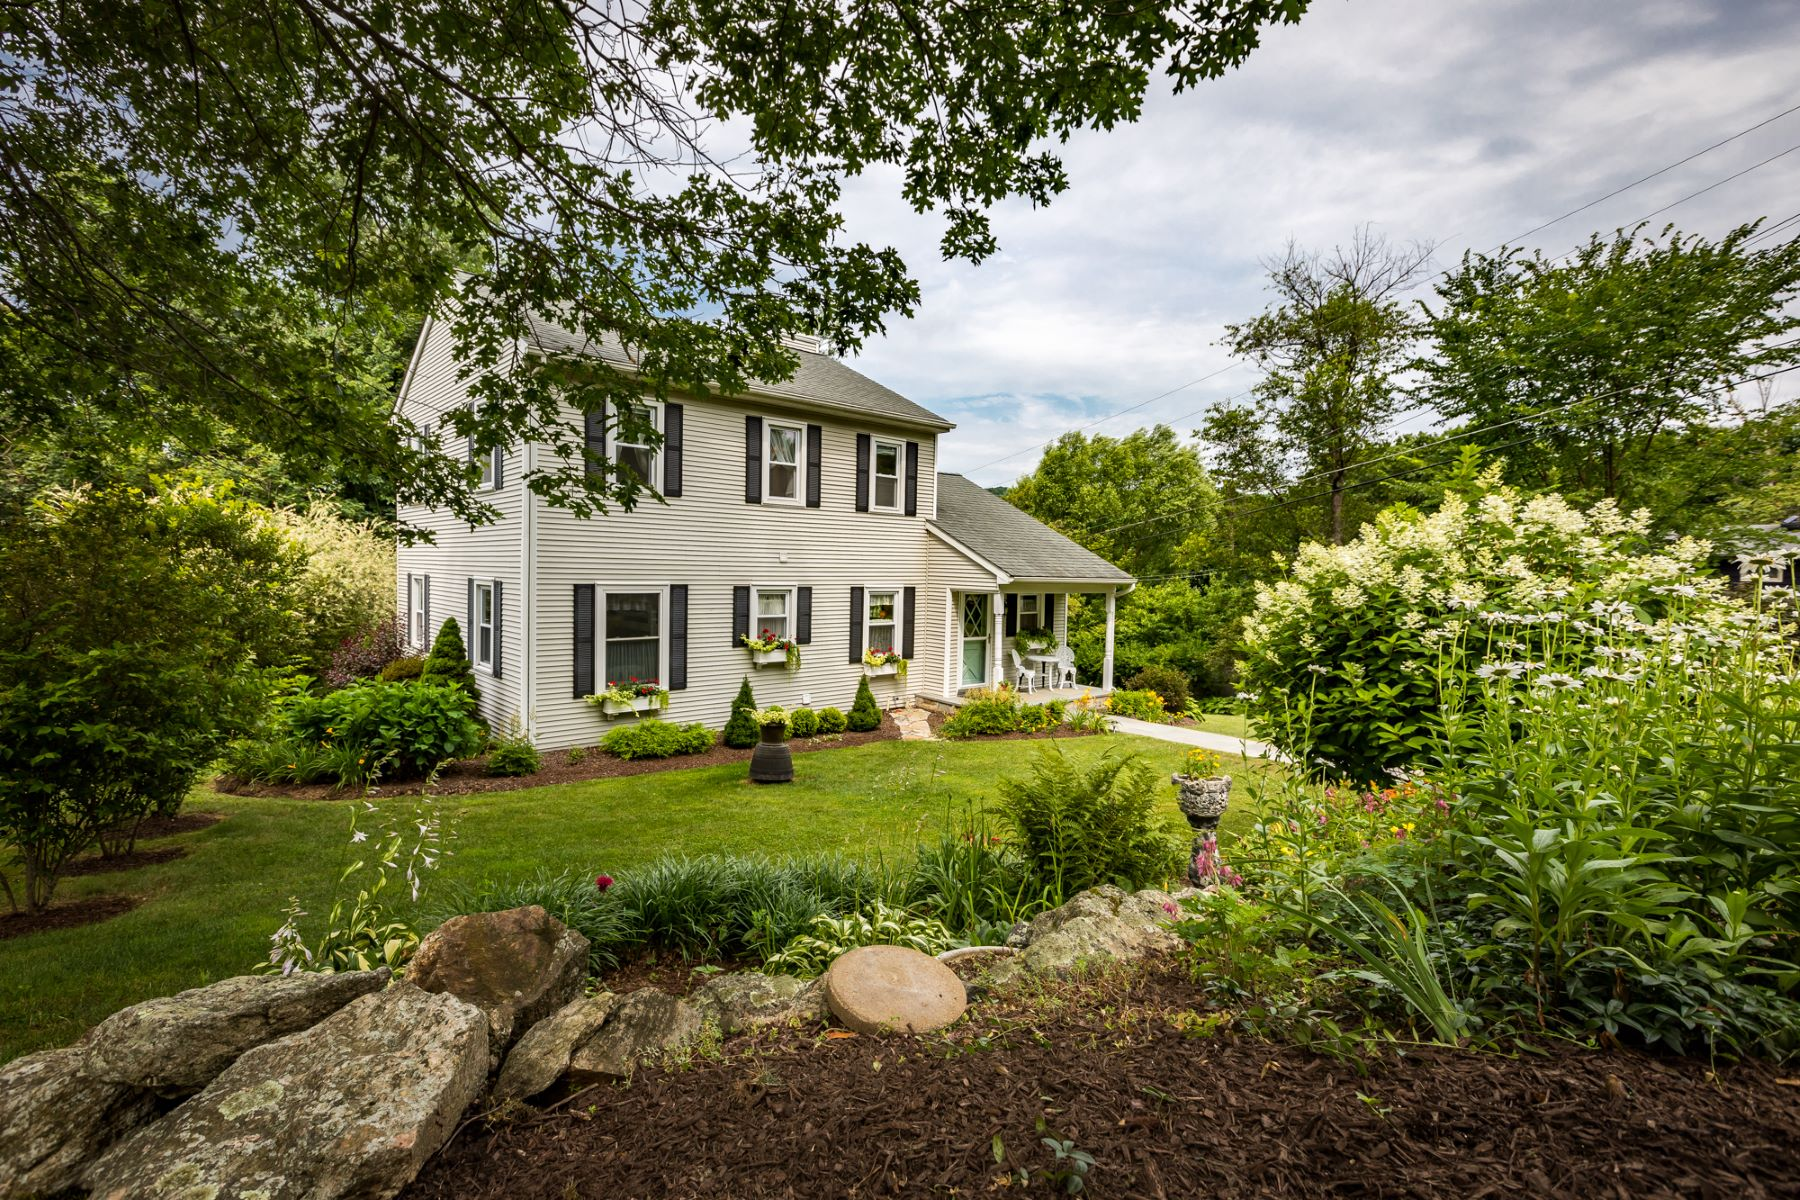 Single Family Homes for Sale at EXQUISITE CANDLEWOOD LAKE COLONIAL 12 Overlook Drive Danbury, Connecticut 06811 United States